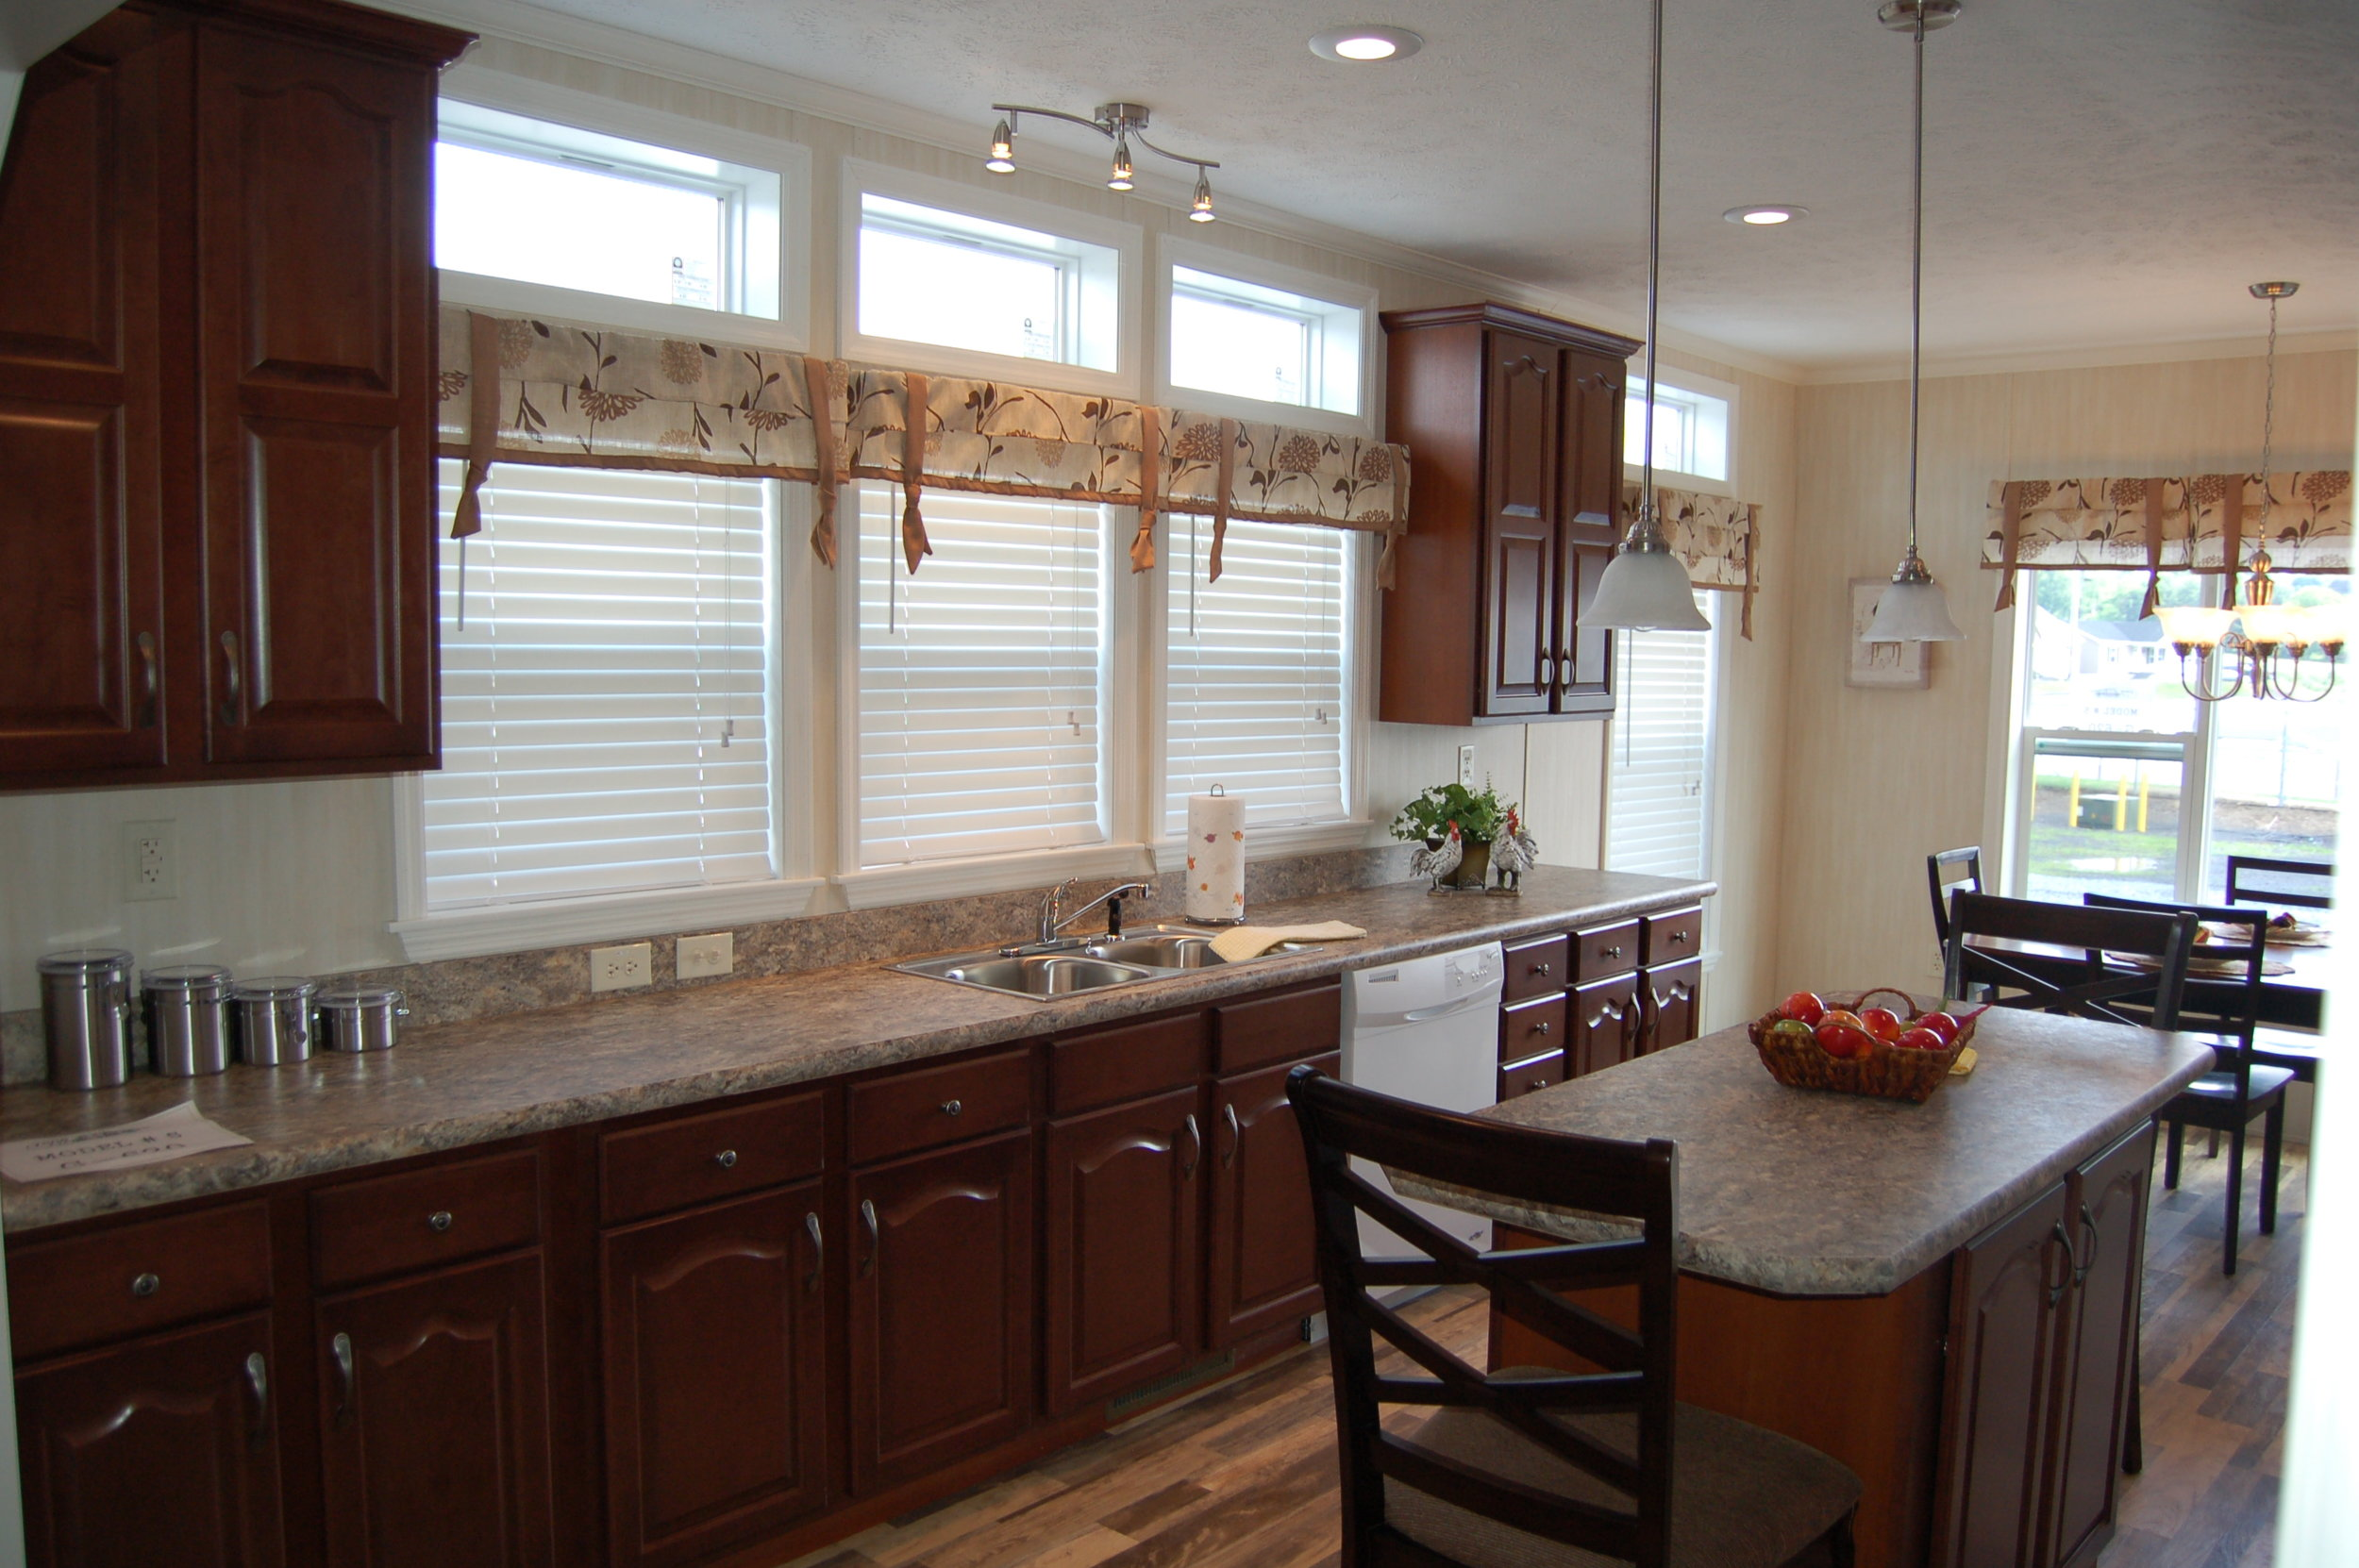 G-620 Kitchen 1.JPG